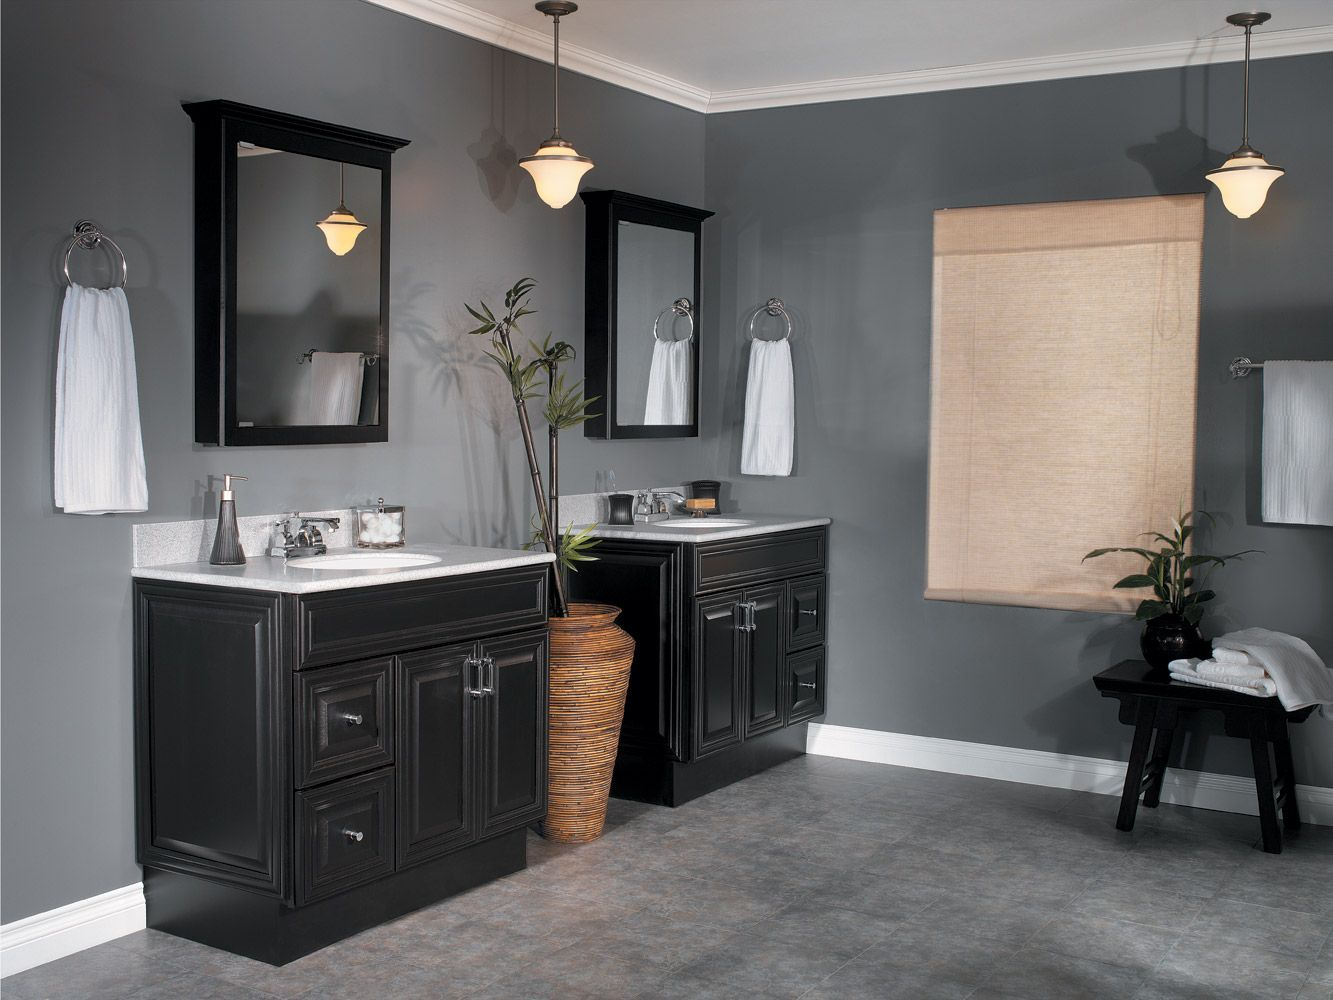 Attirant Images Bathroom Dark Wood Vanity Tile | ... Bathroom Wall Along With Black  Master